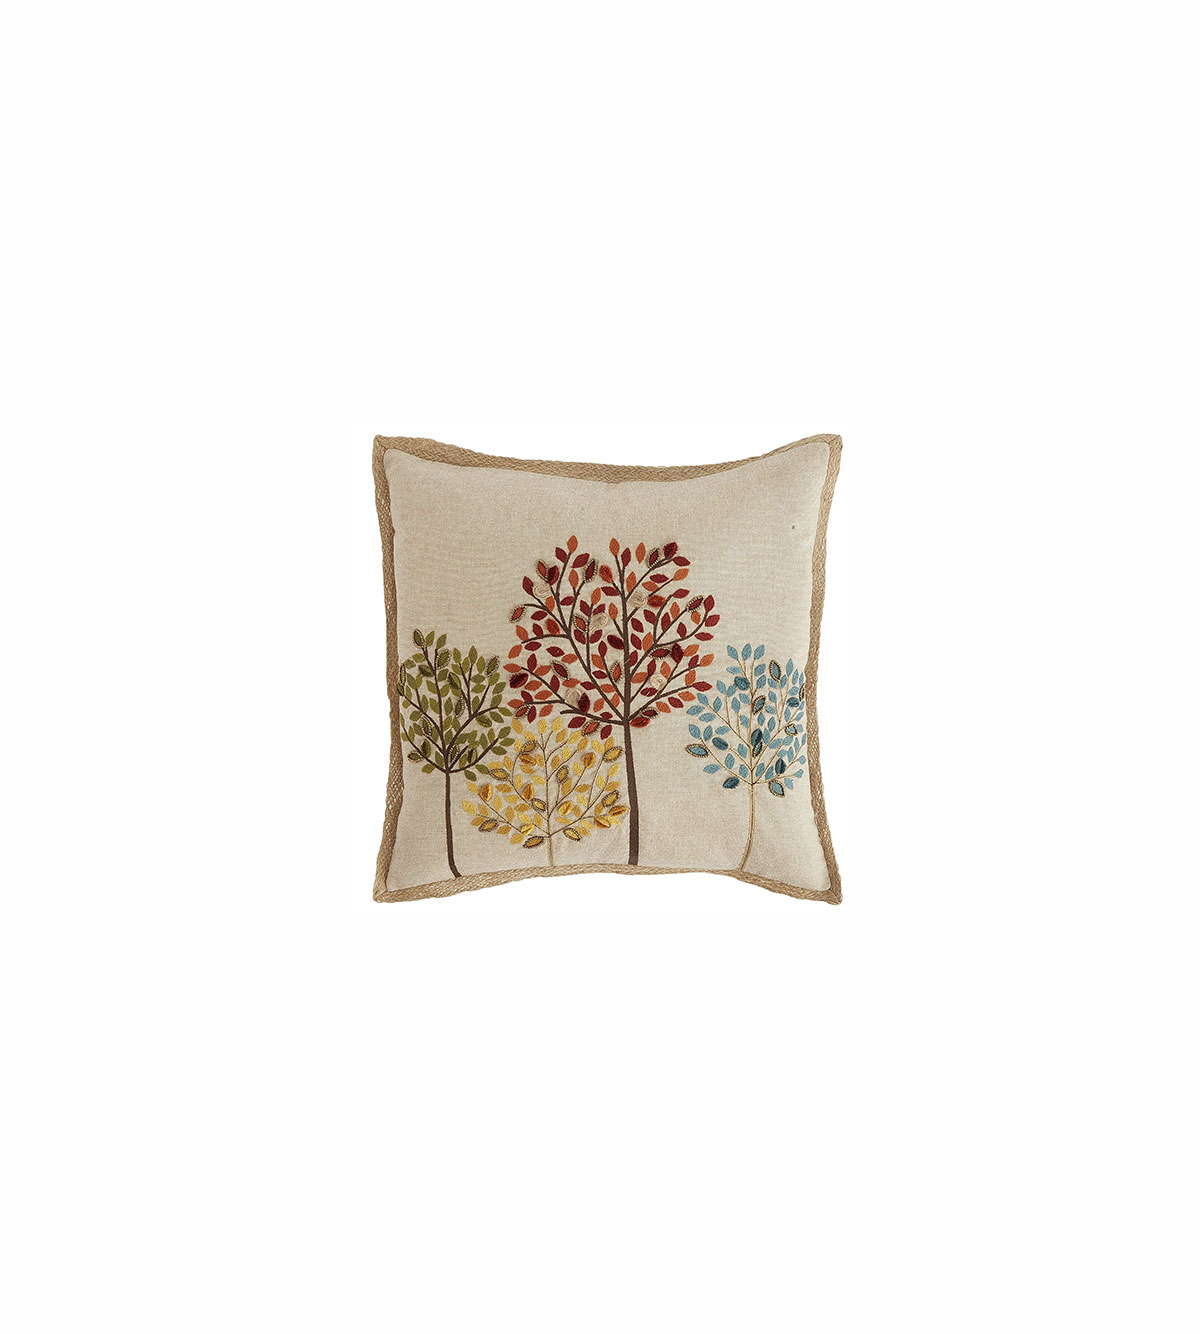 Beaded & Embroidered Trees Pillow